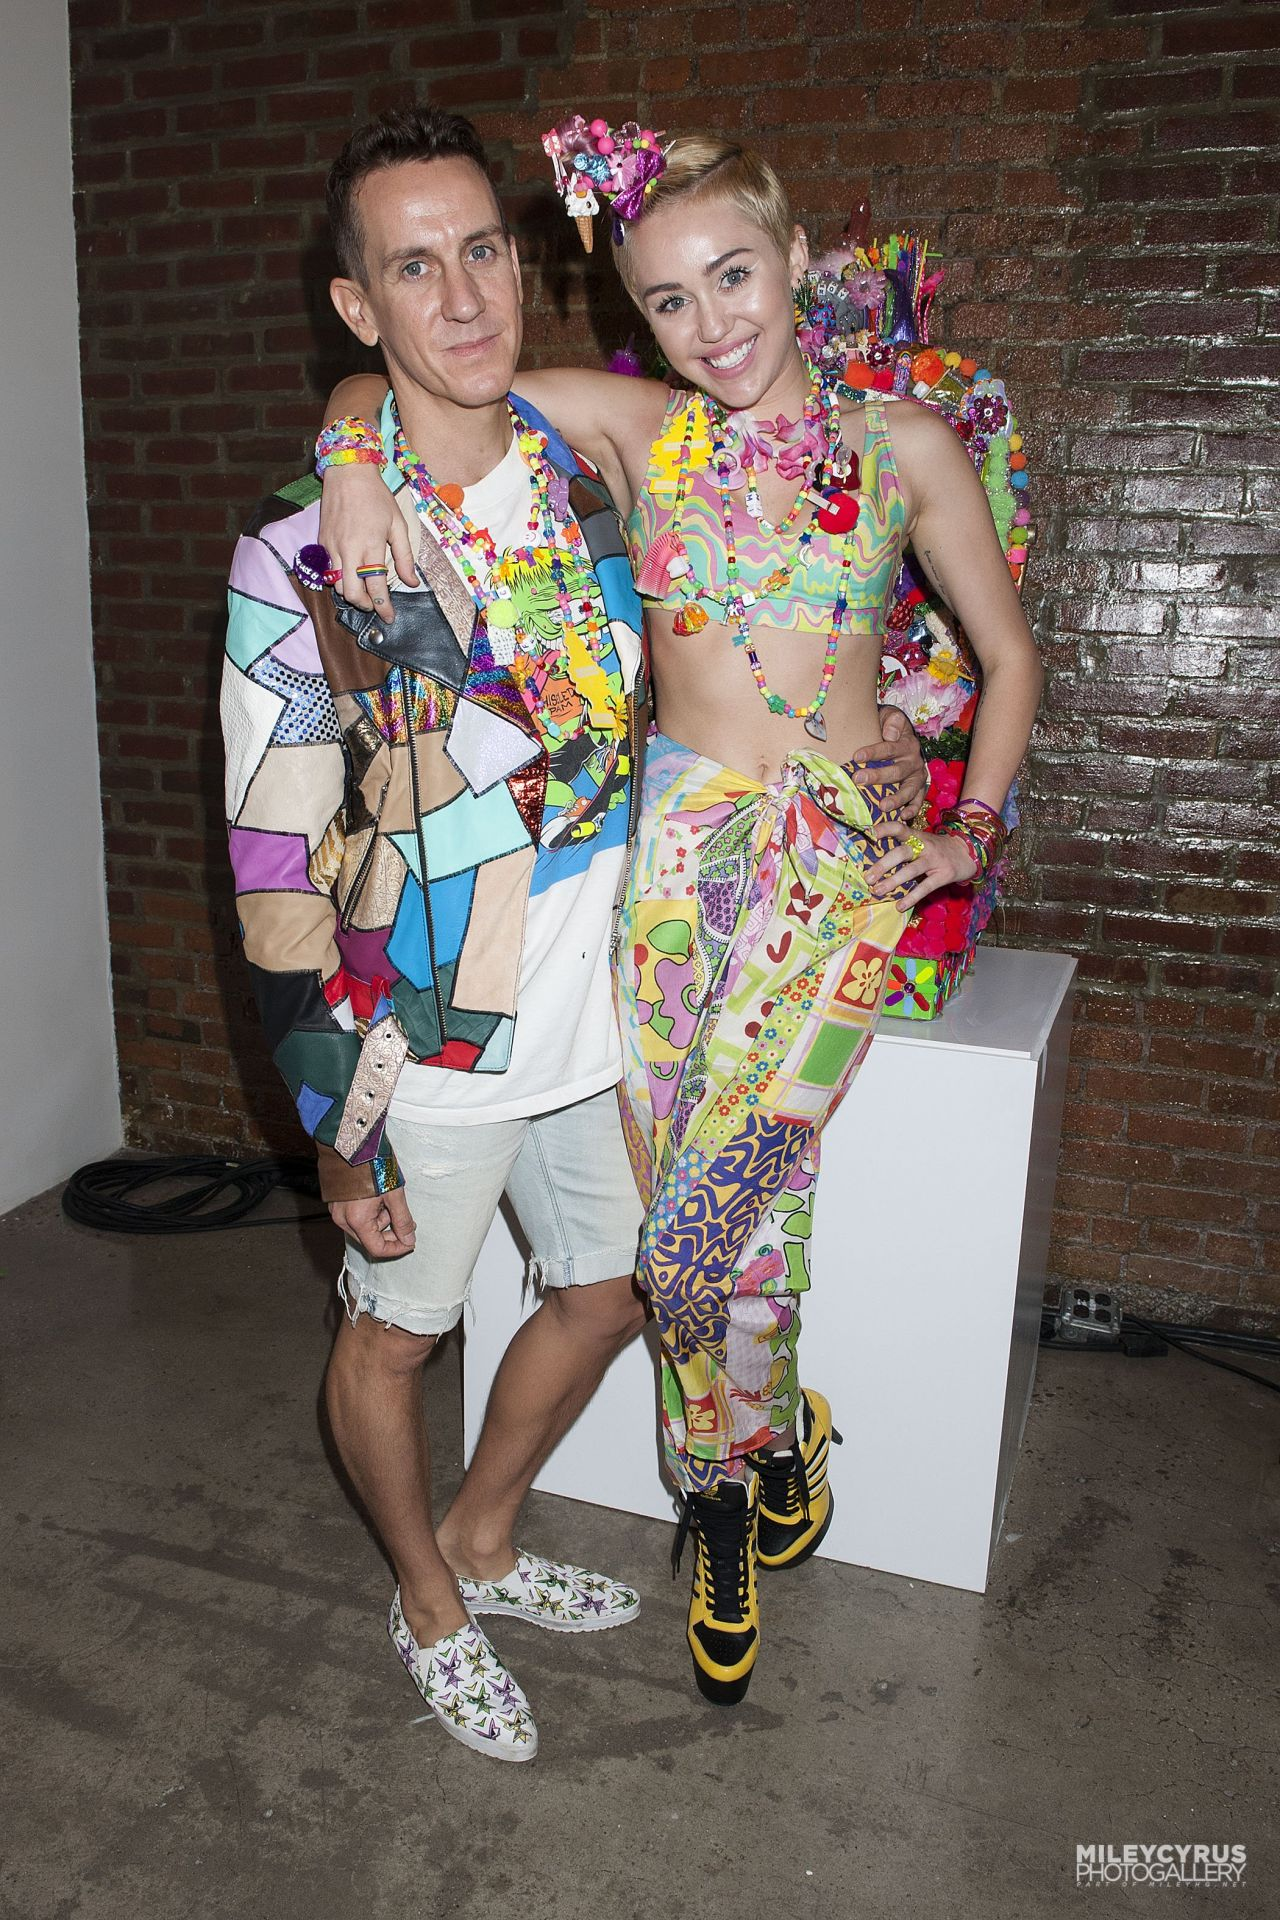 Miley Cyrus at Jeremy Scott